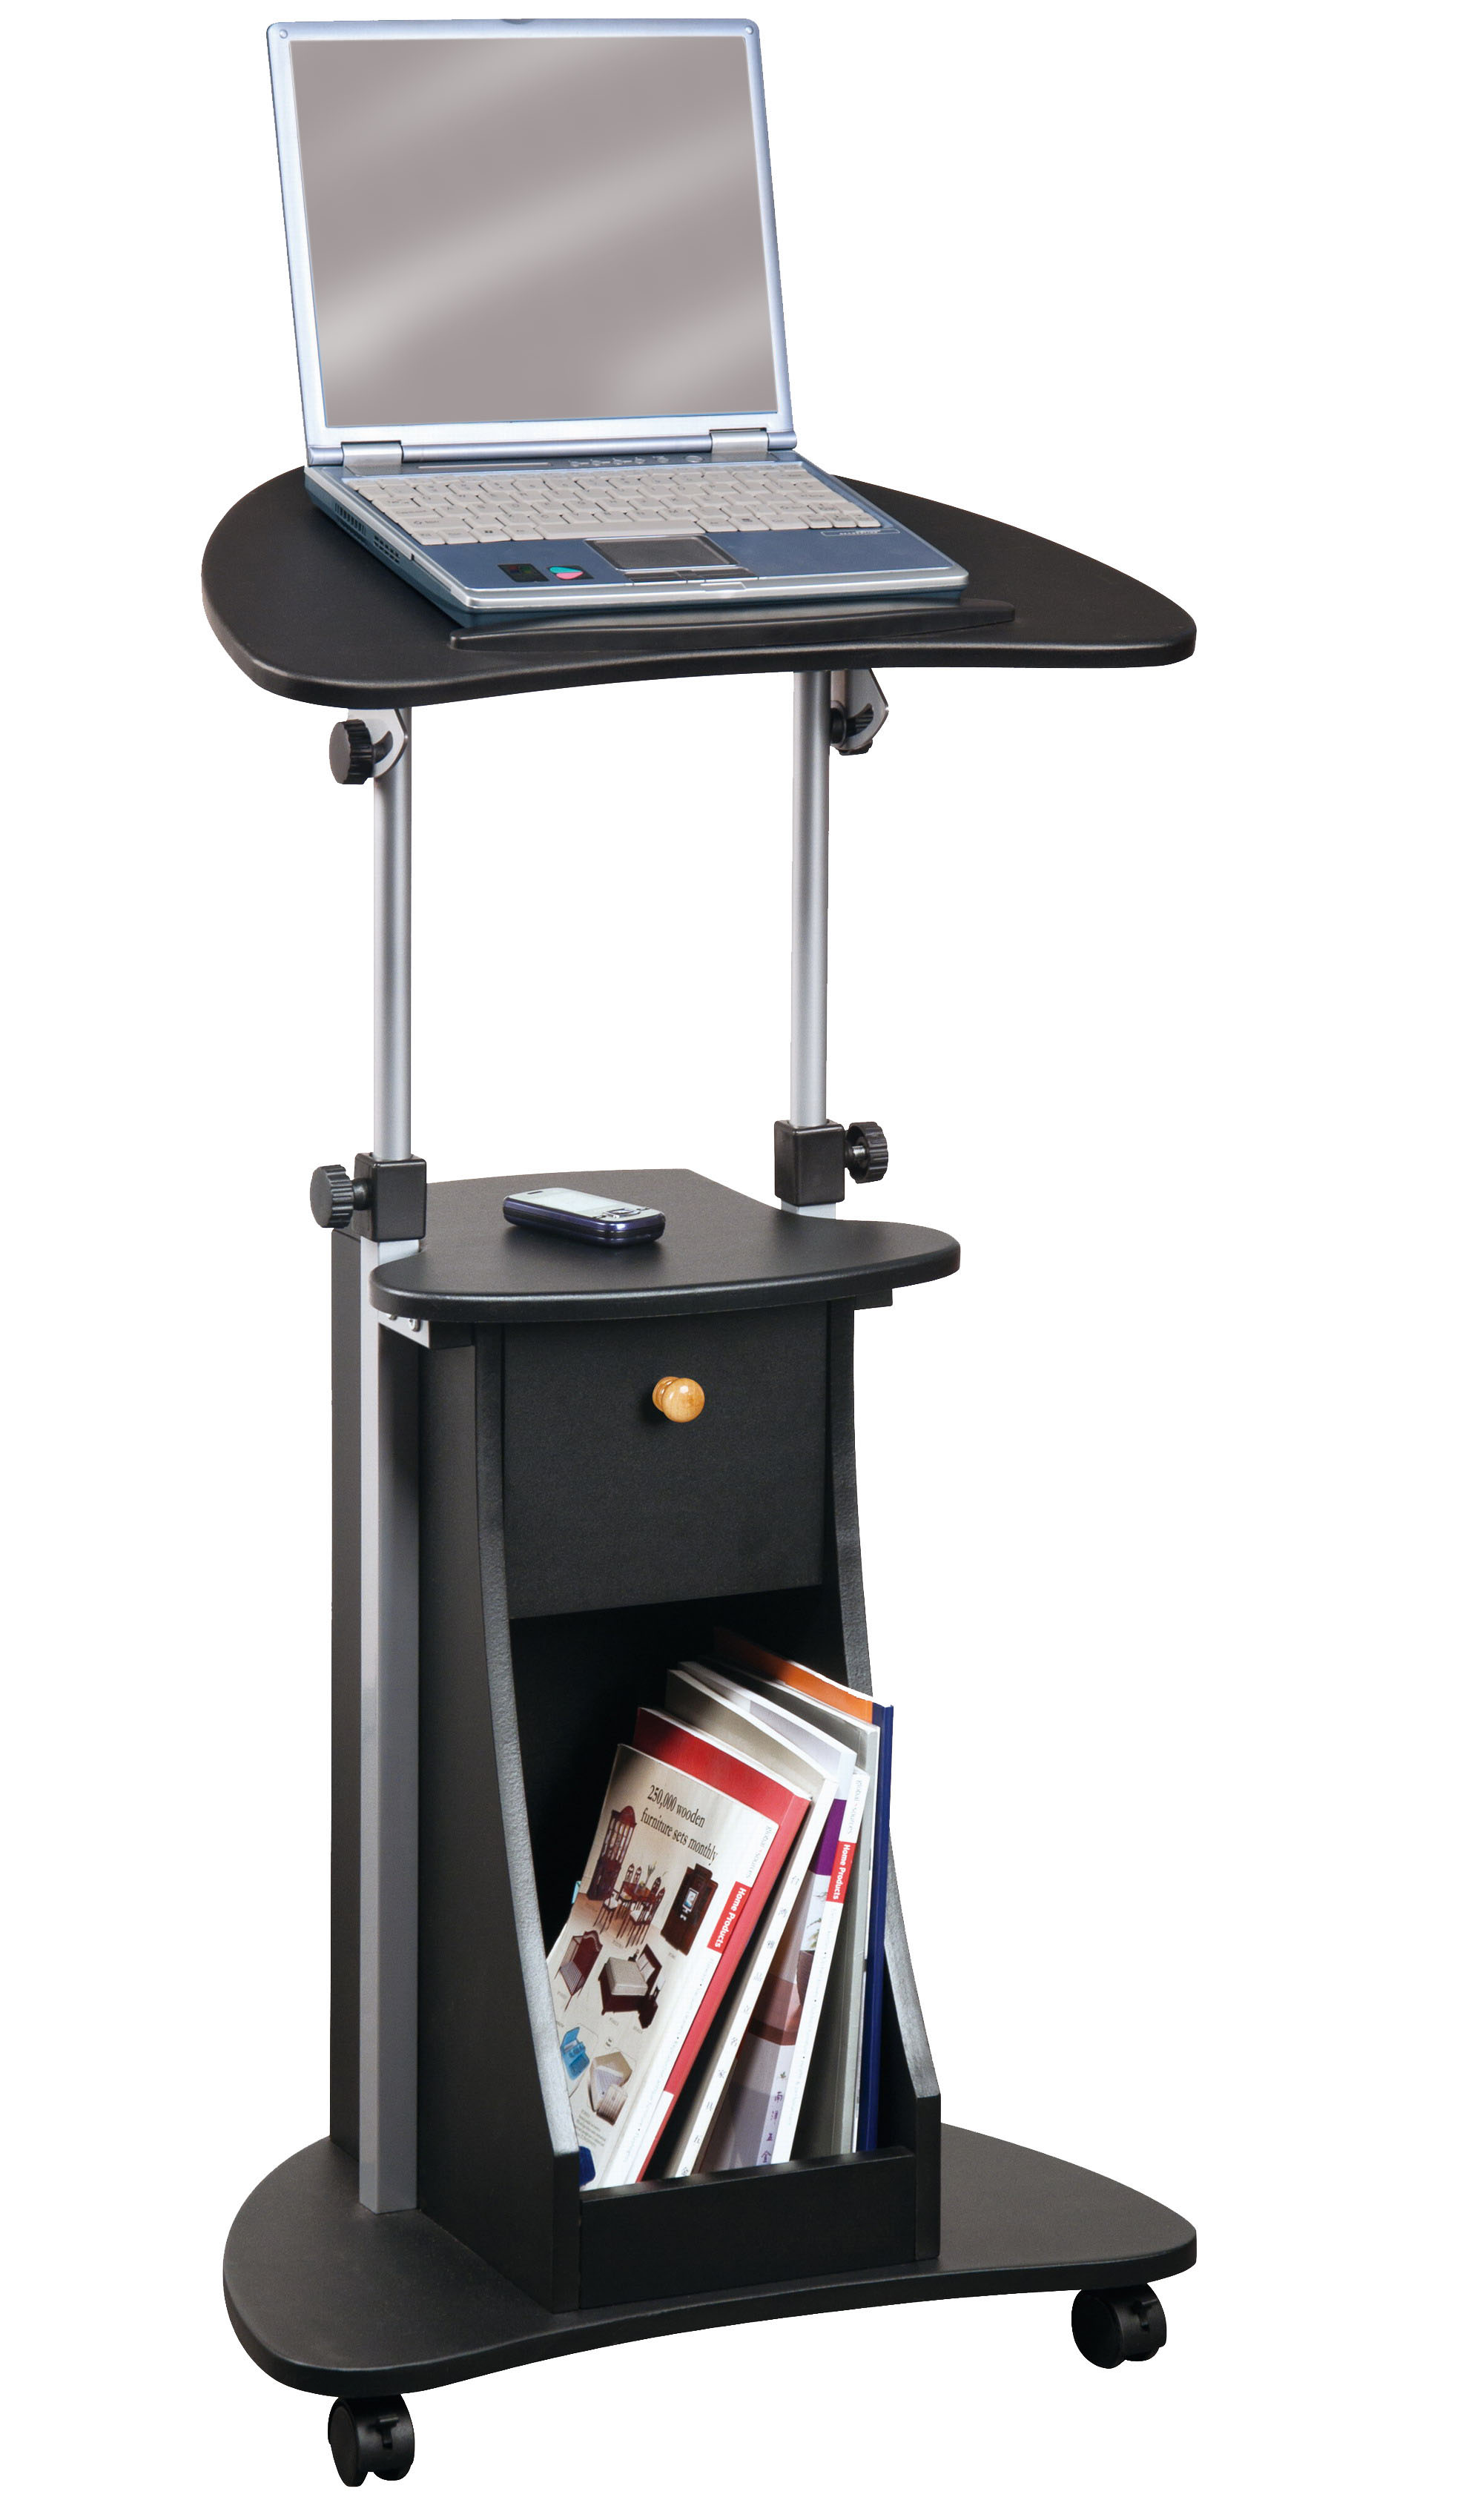 Adjustable Mobile Laptop Cart   By RTA Products Price: $102.99